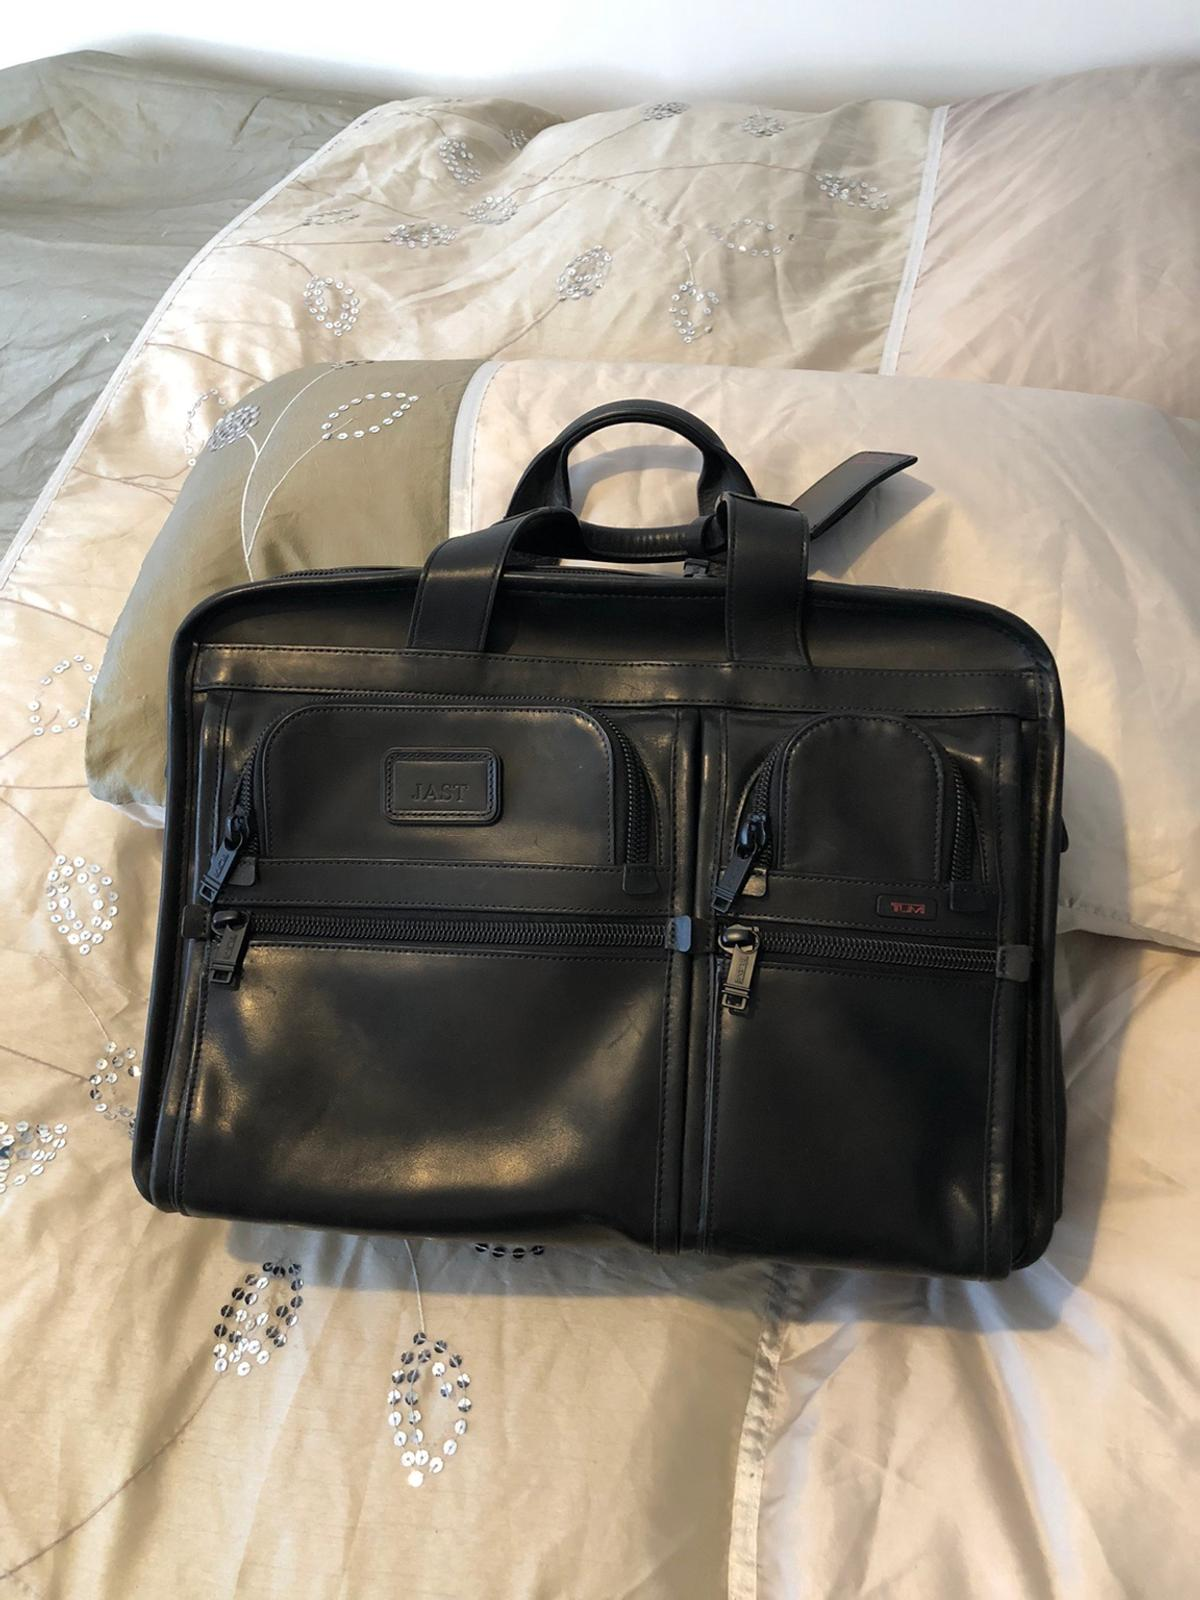 Tumi black leather expandable organizer laptop briefcase. This bag is perfect for both commuting to work or as an over night bag. You will be getting a great bag that looks brand new while paying a fraction of the price of a new one. Comes with a shoulder strap.